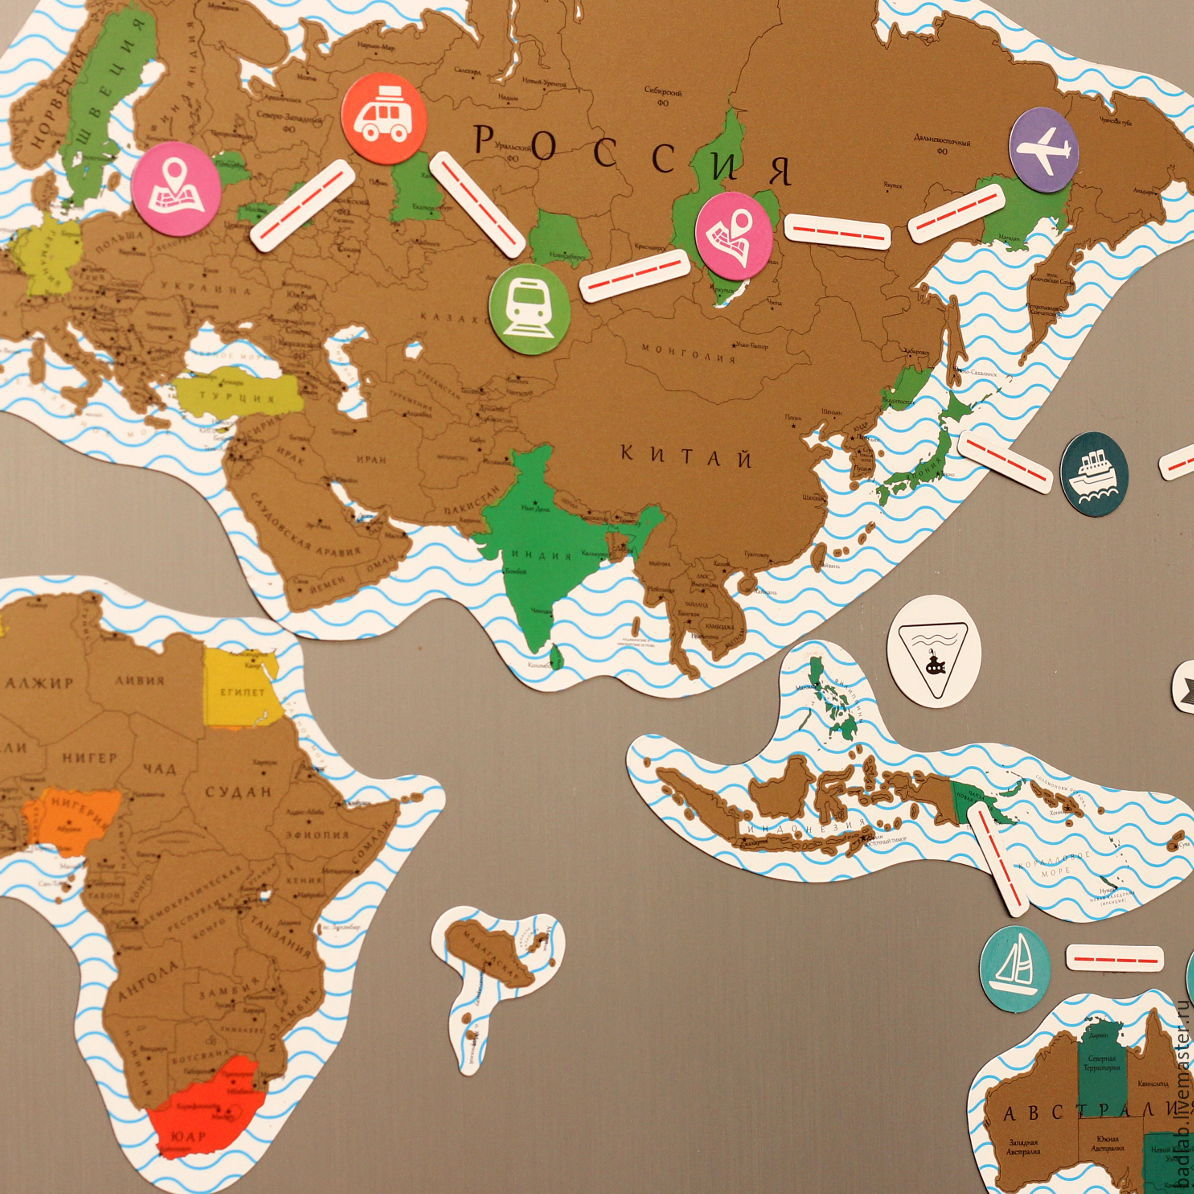 Magnetic scratch world map puzzle truemap gold shop online on magnetic scratch world map puzzle truemap gold badlab online shopping on my gumiabroncs Choice Image